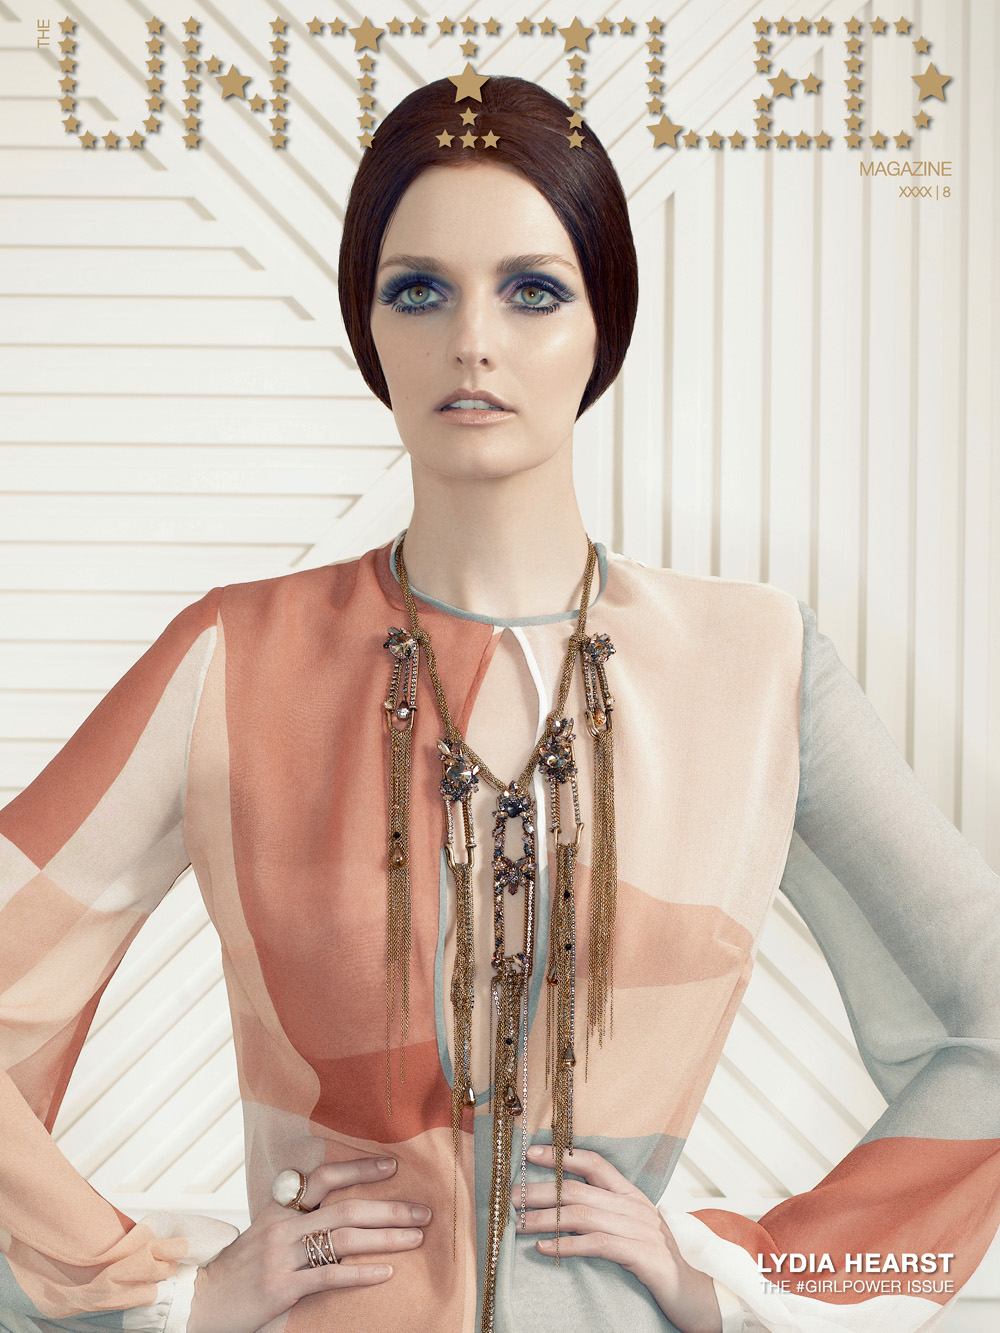 The-Untitled-Magazine-Issue-8-Lydia-Hearst-Cover-LR.jpg